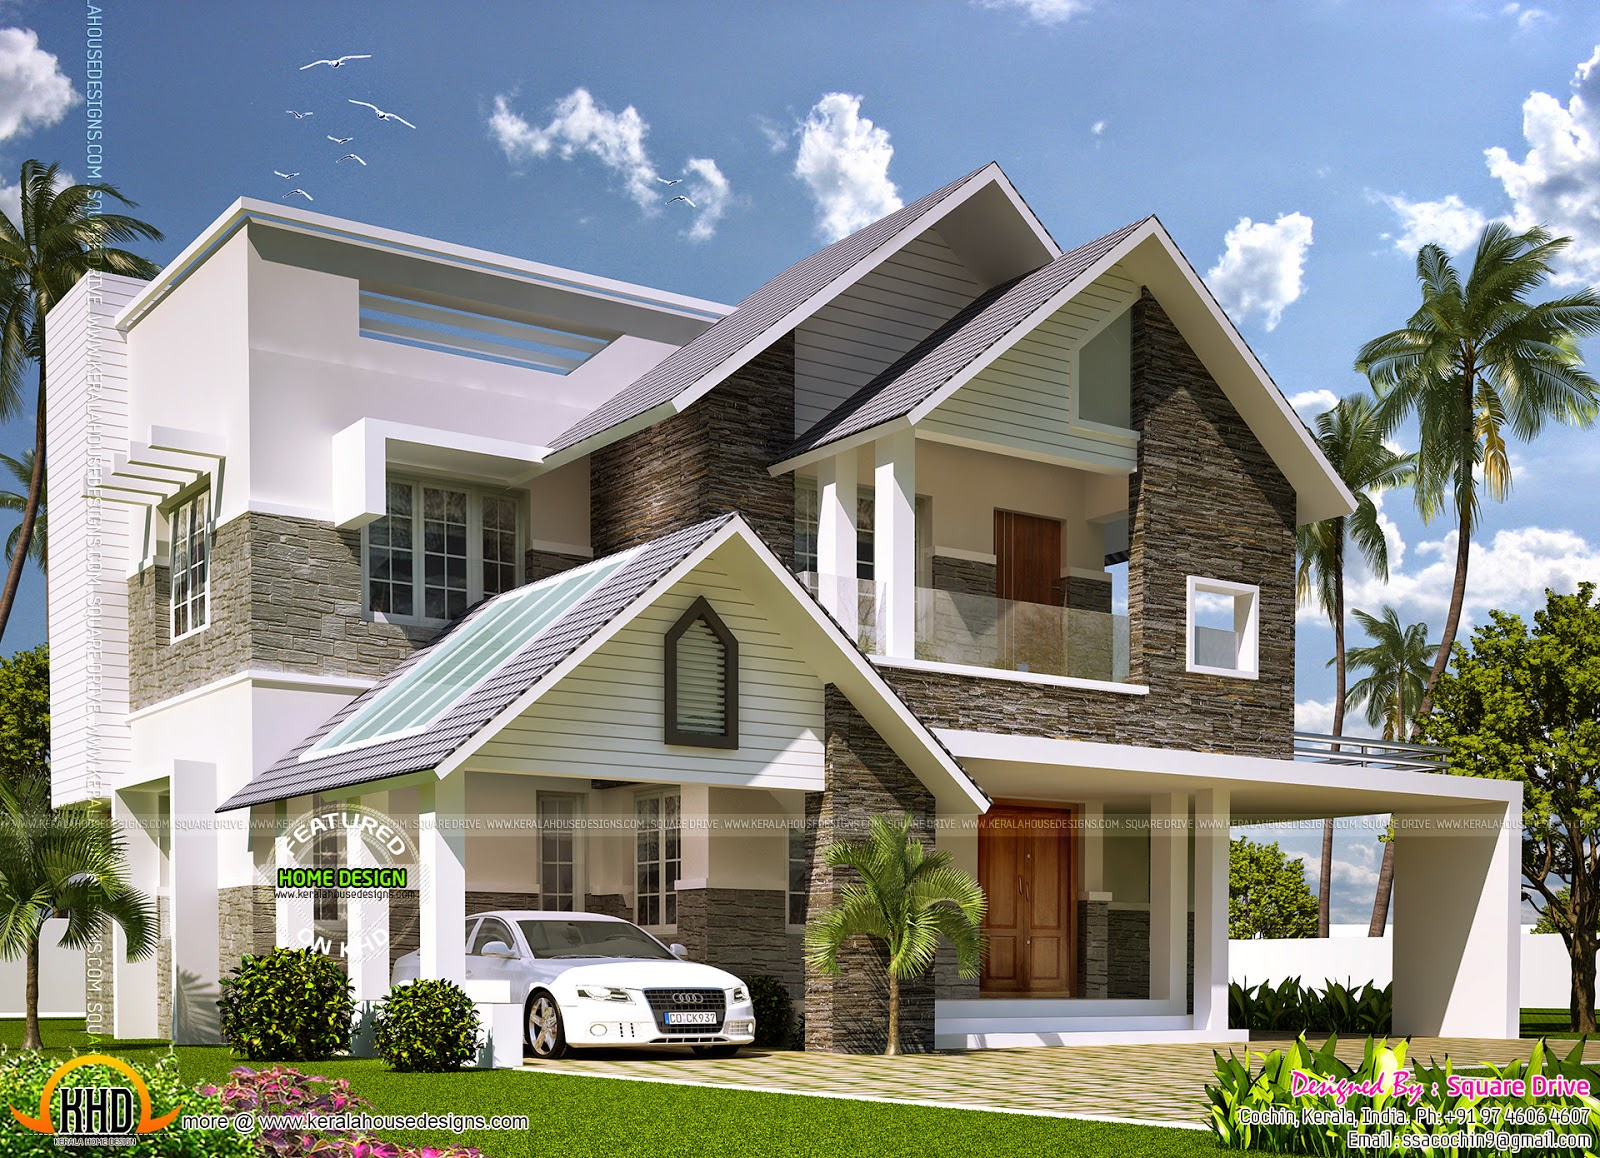 Most Modern Contemporary House Design Keralahousedesigns